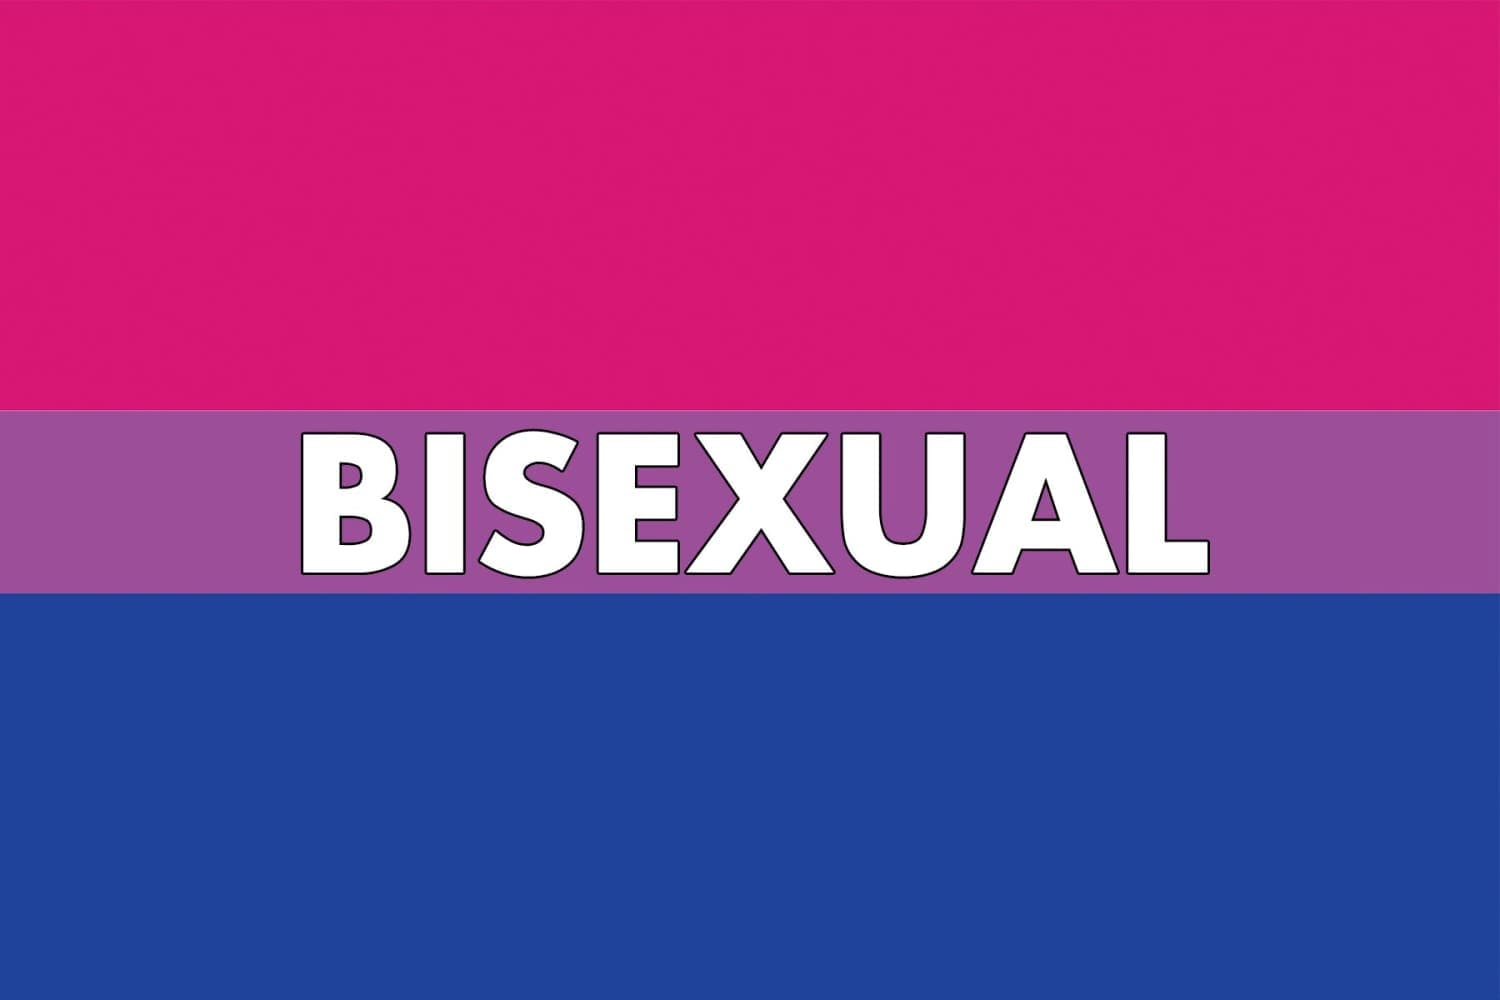 Bisexual Definition | Bisexual Pride Flag